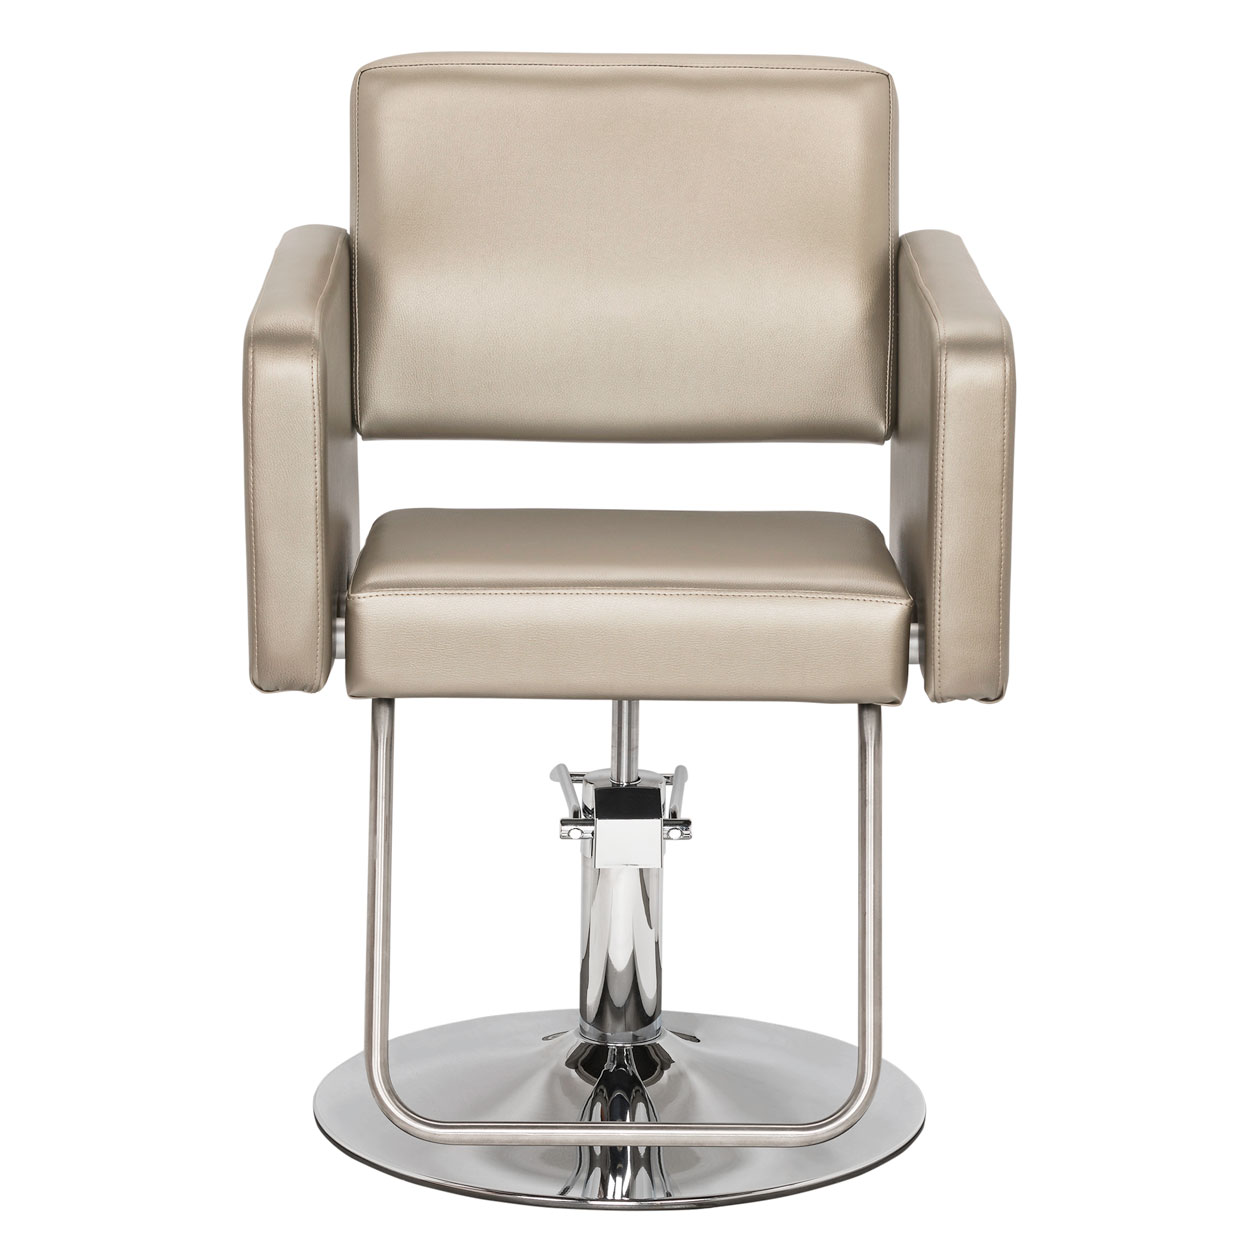 Custom Modin Hair Salon Styling Chair alternative product image 3